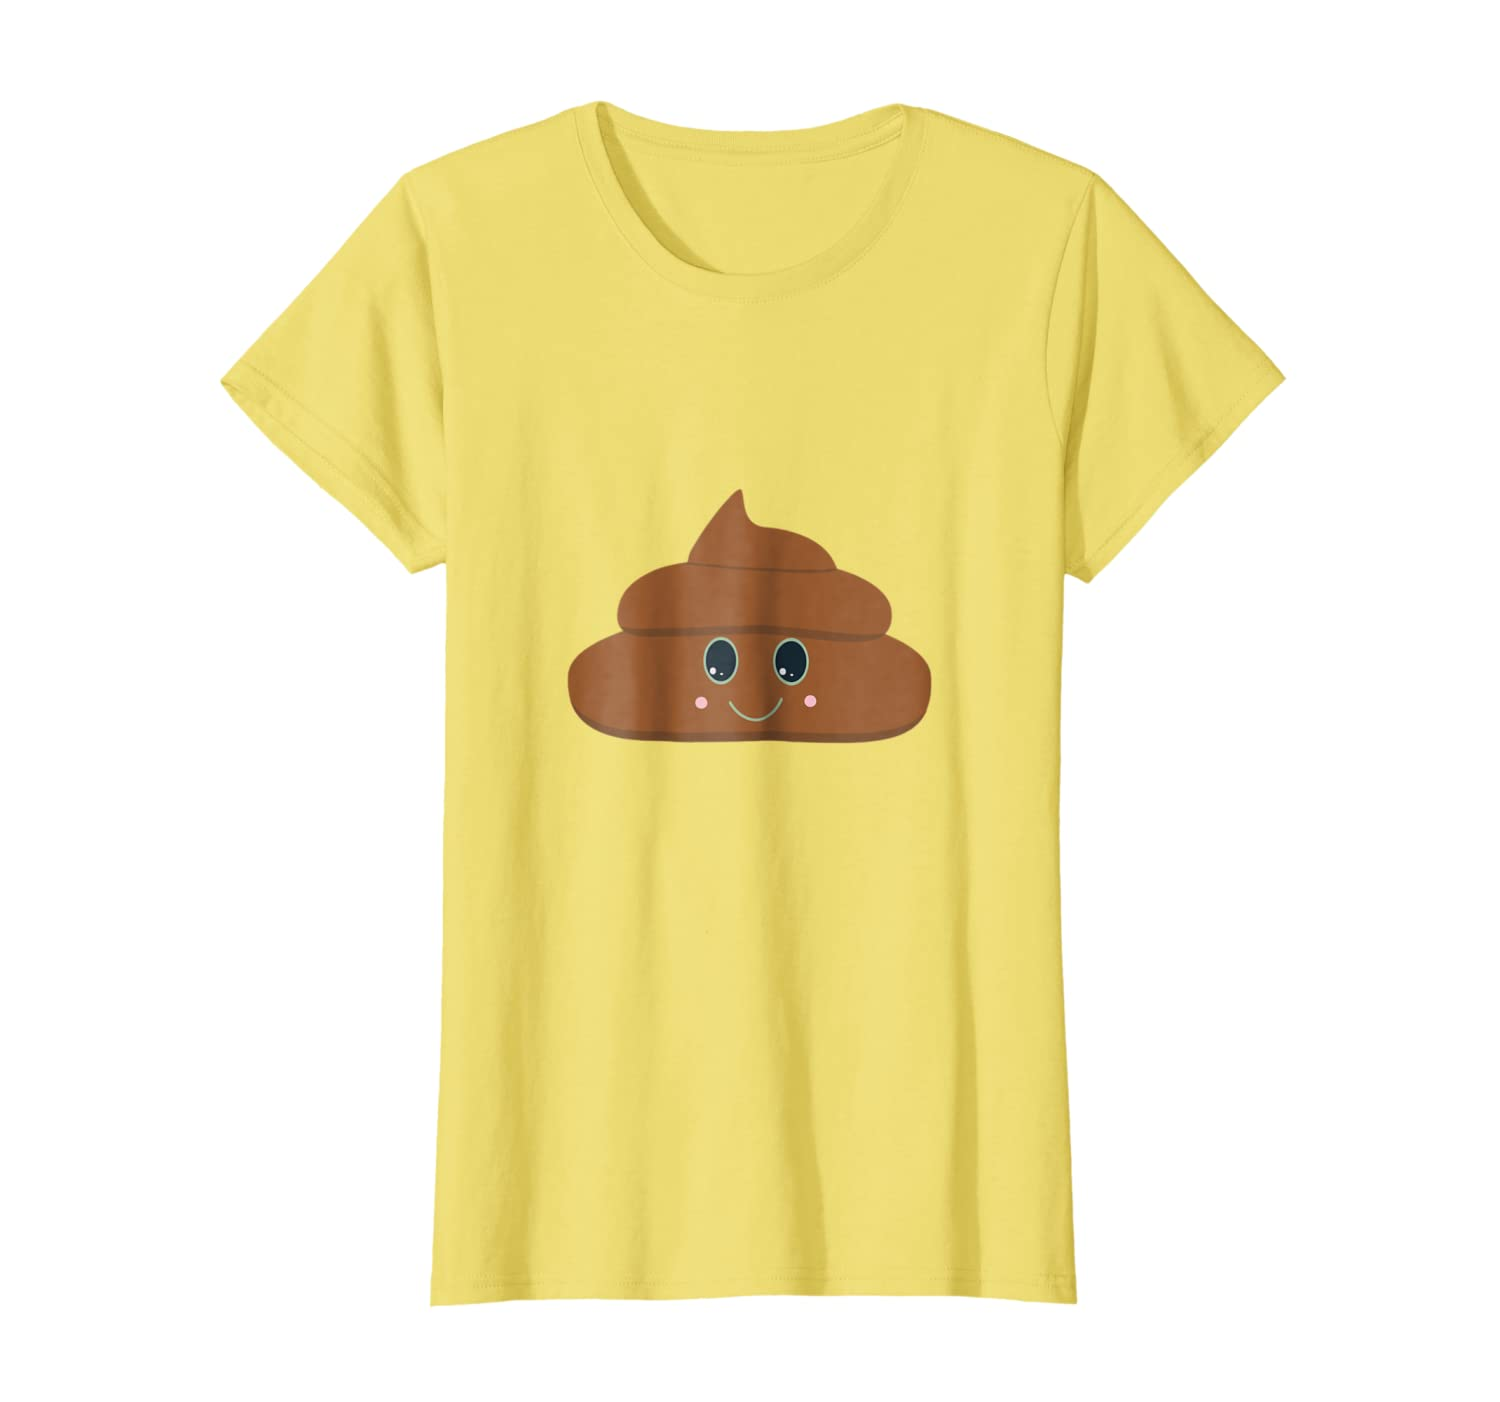 Amazon.com: Happy Poo - Camiseta de excrementos y poo: Clothing